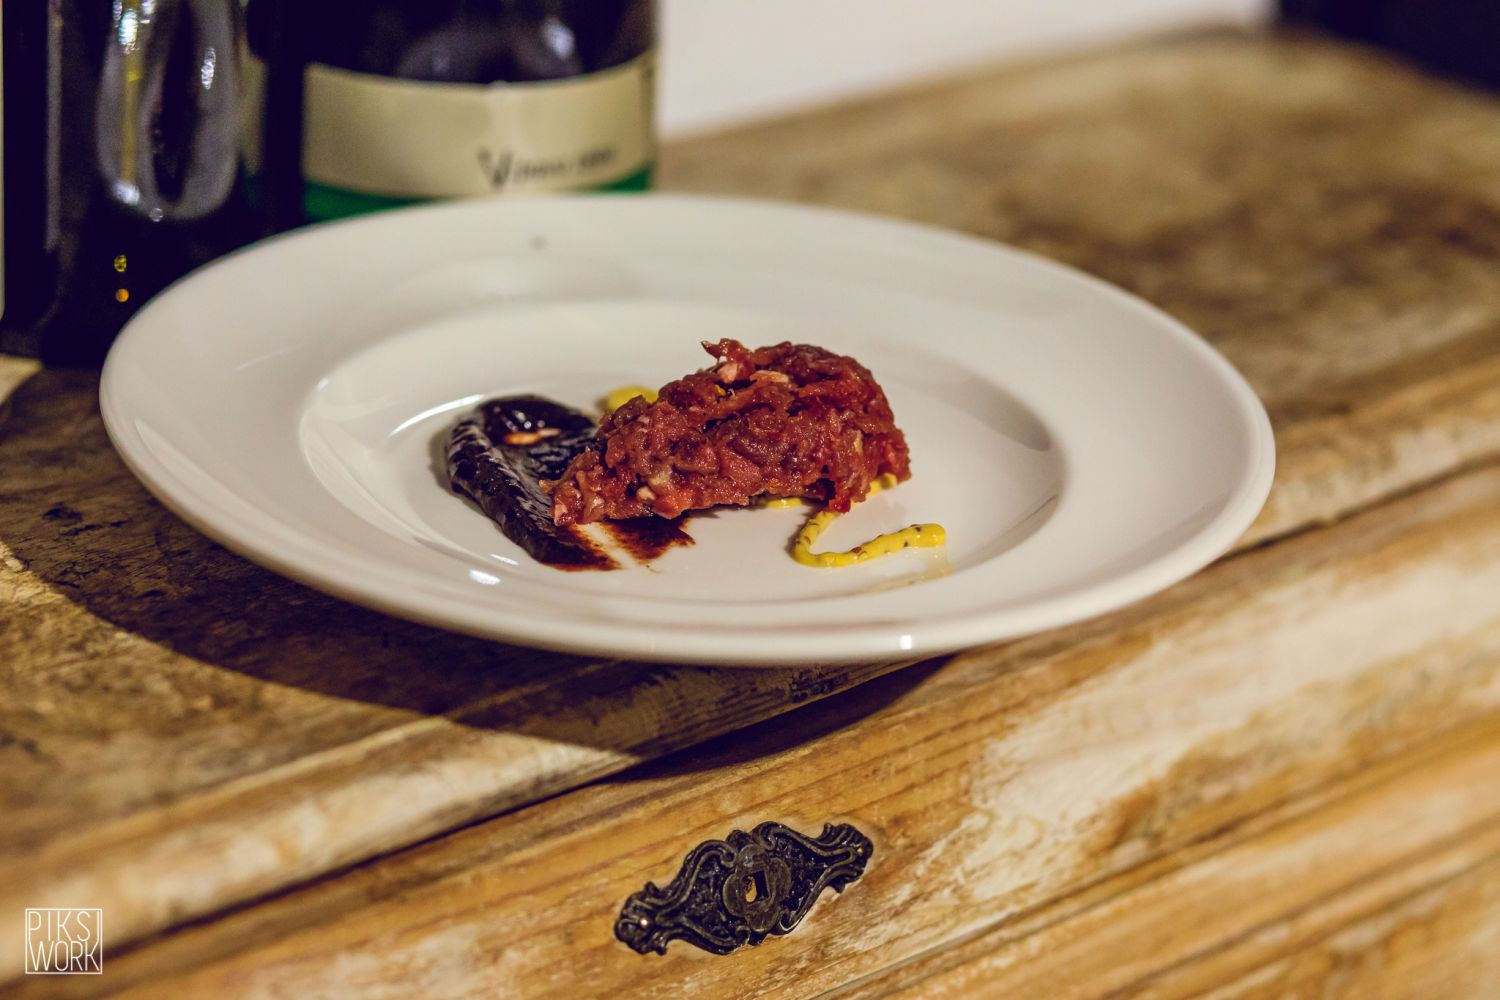 Beef tartare with chilli pepper, mustard, and a Merlot reduction, which pairs well with Ferjančič's Merlot